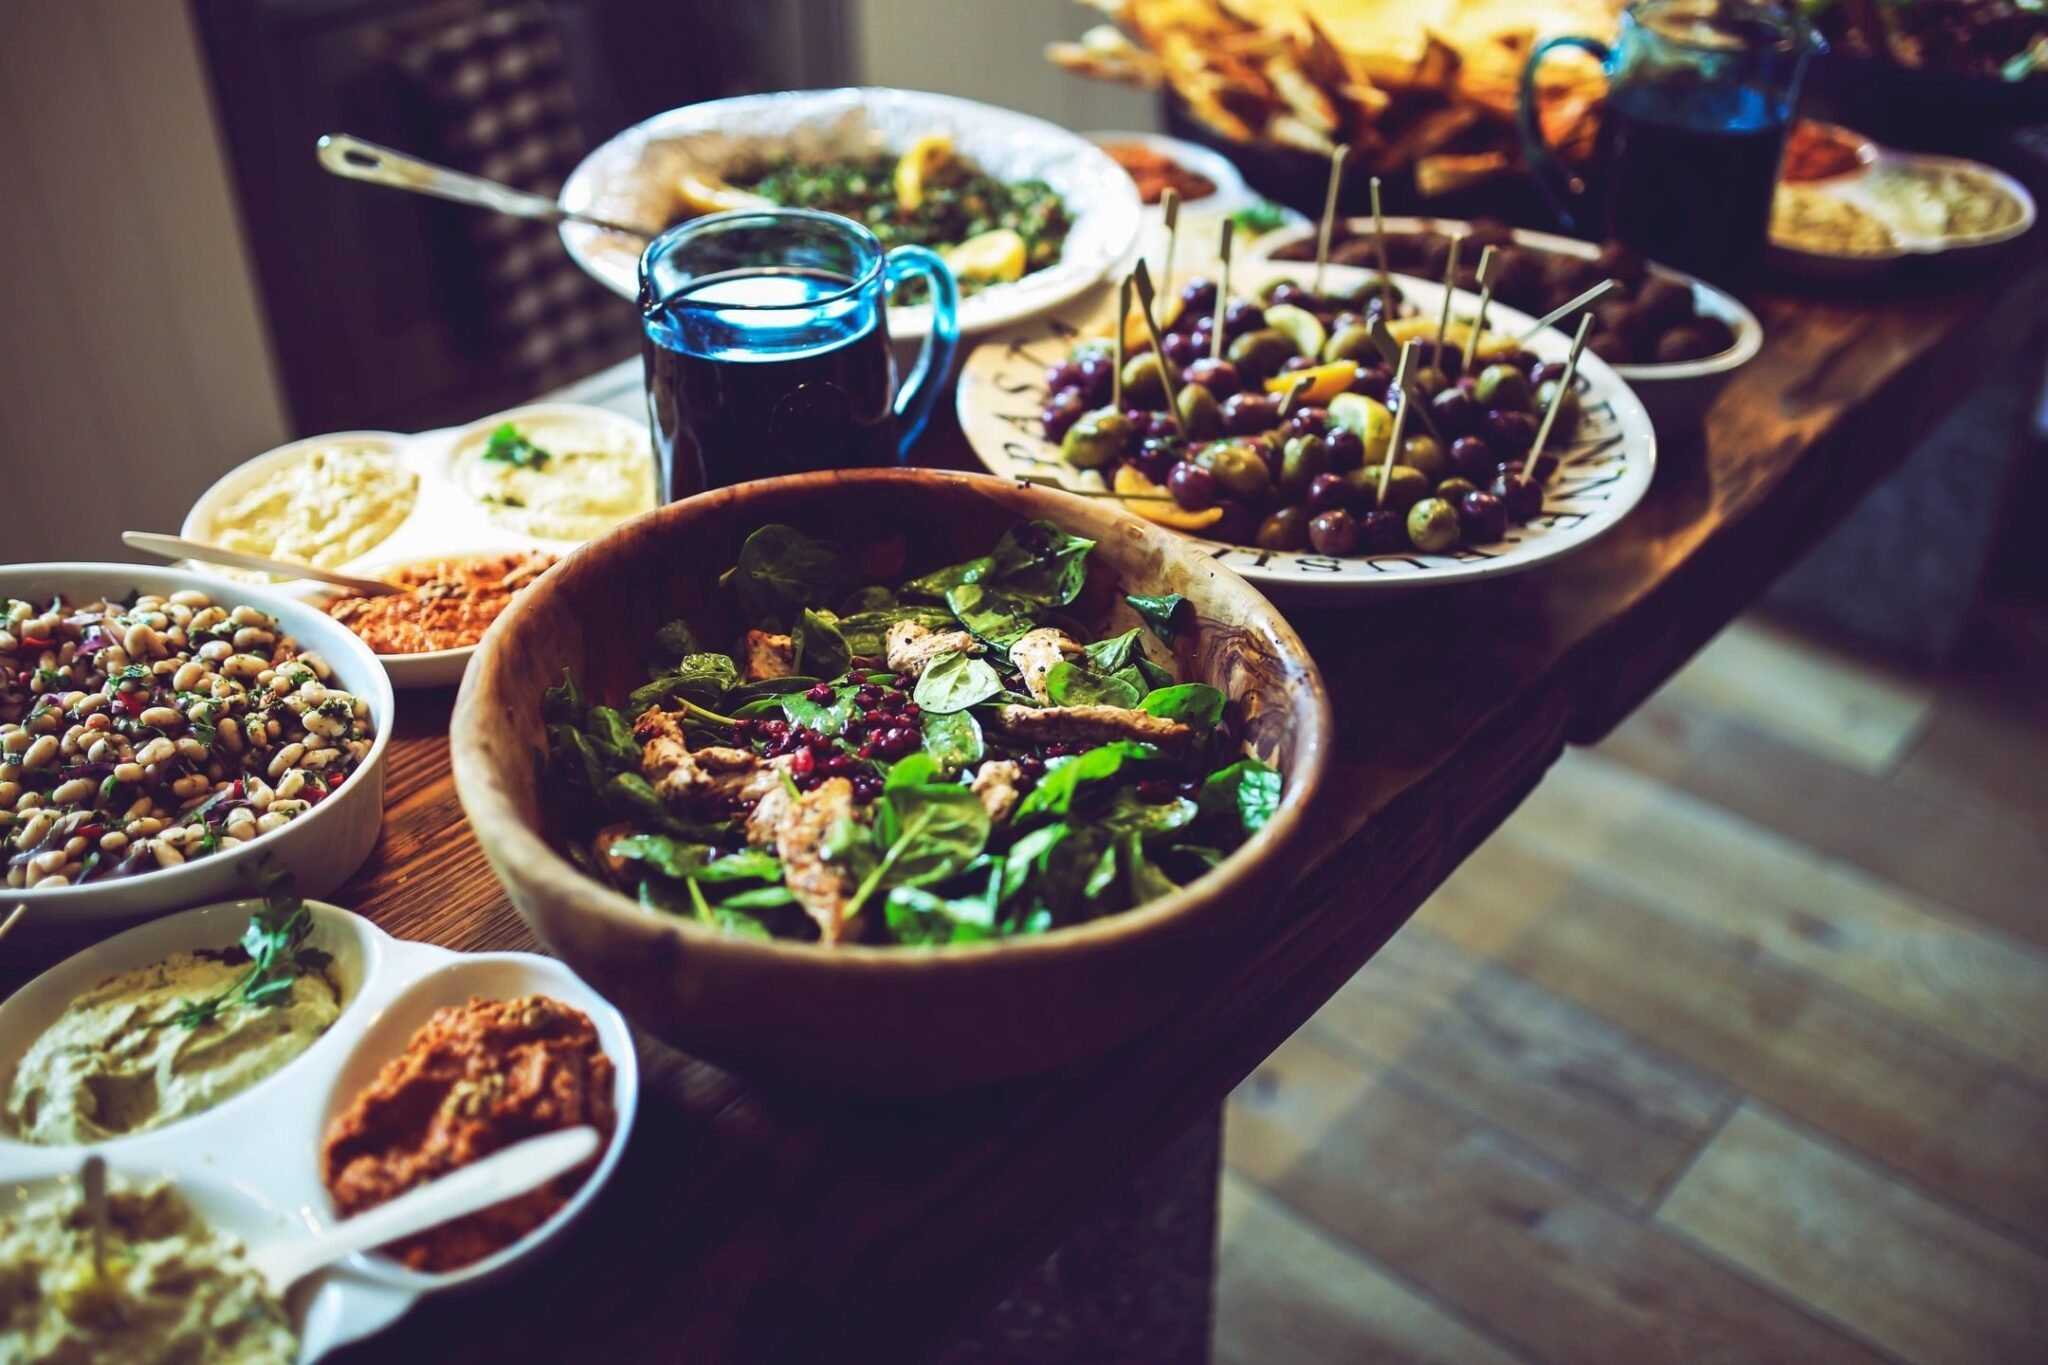 dining at home to combat obesity